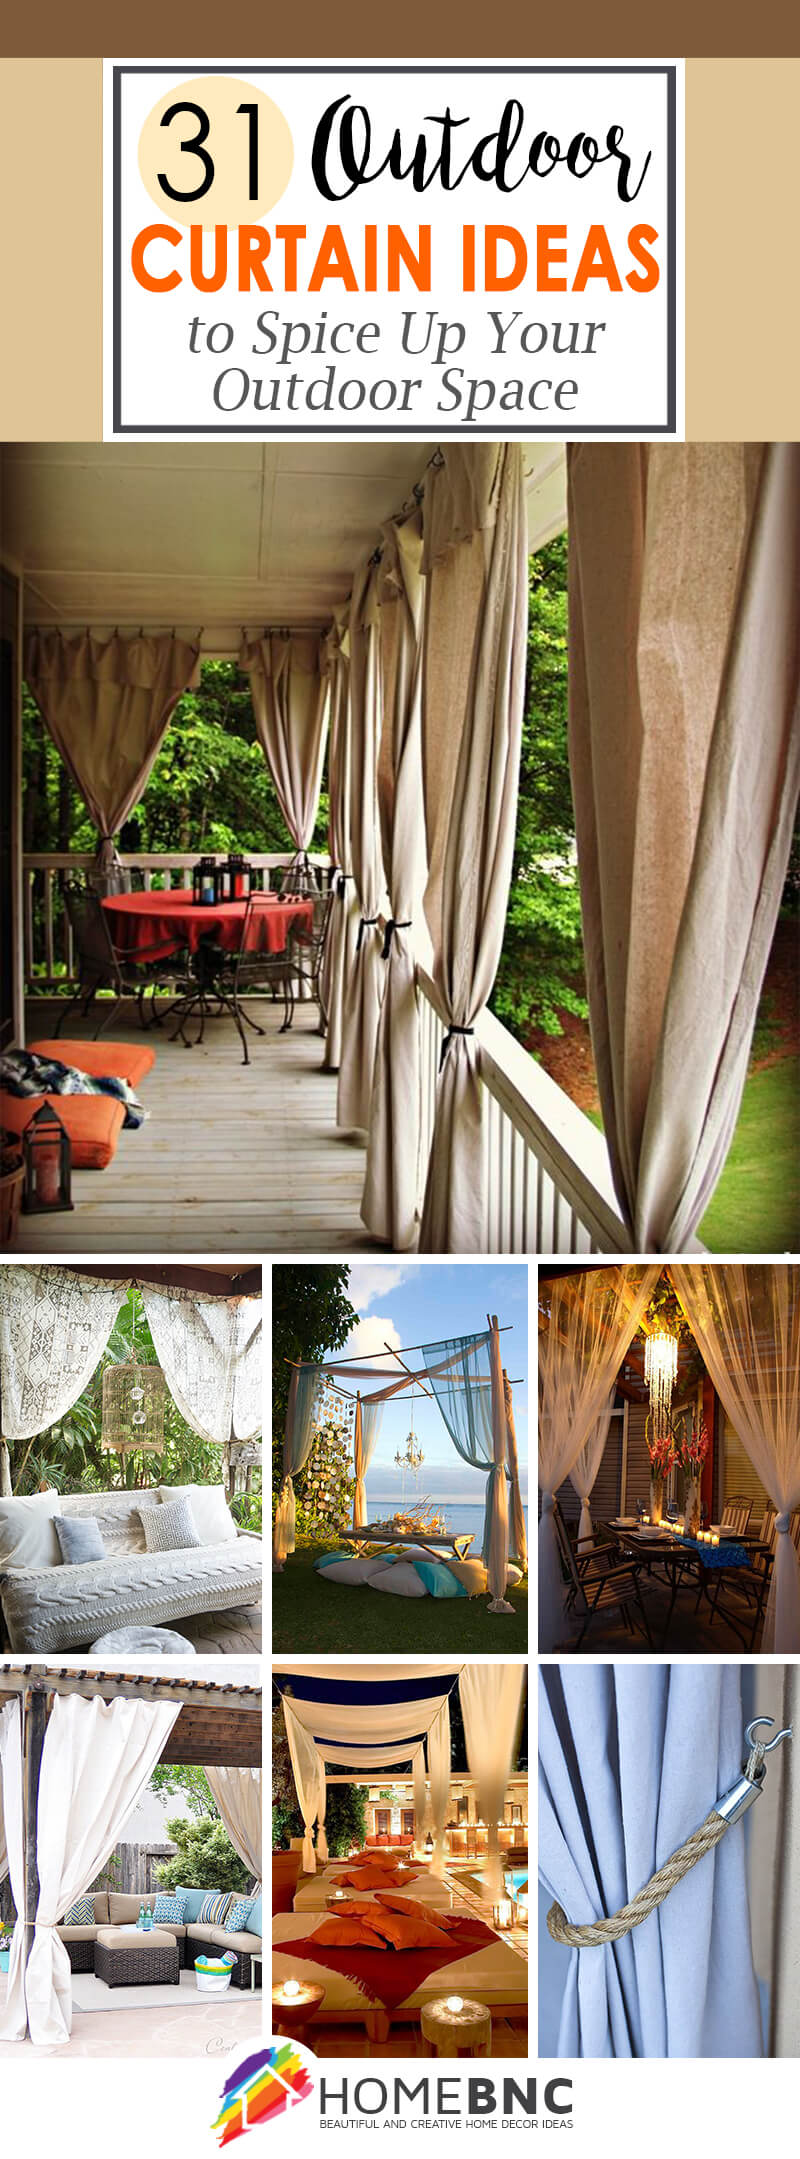 Outdoor Curtain Decorations